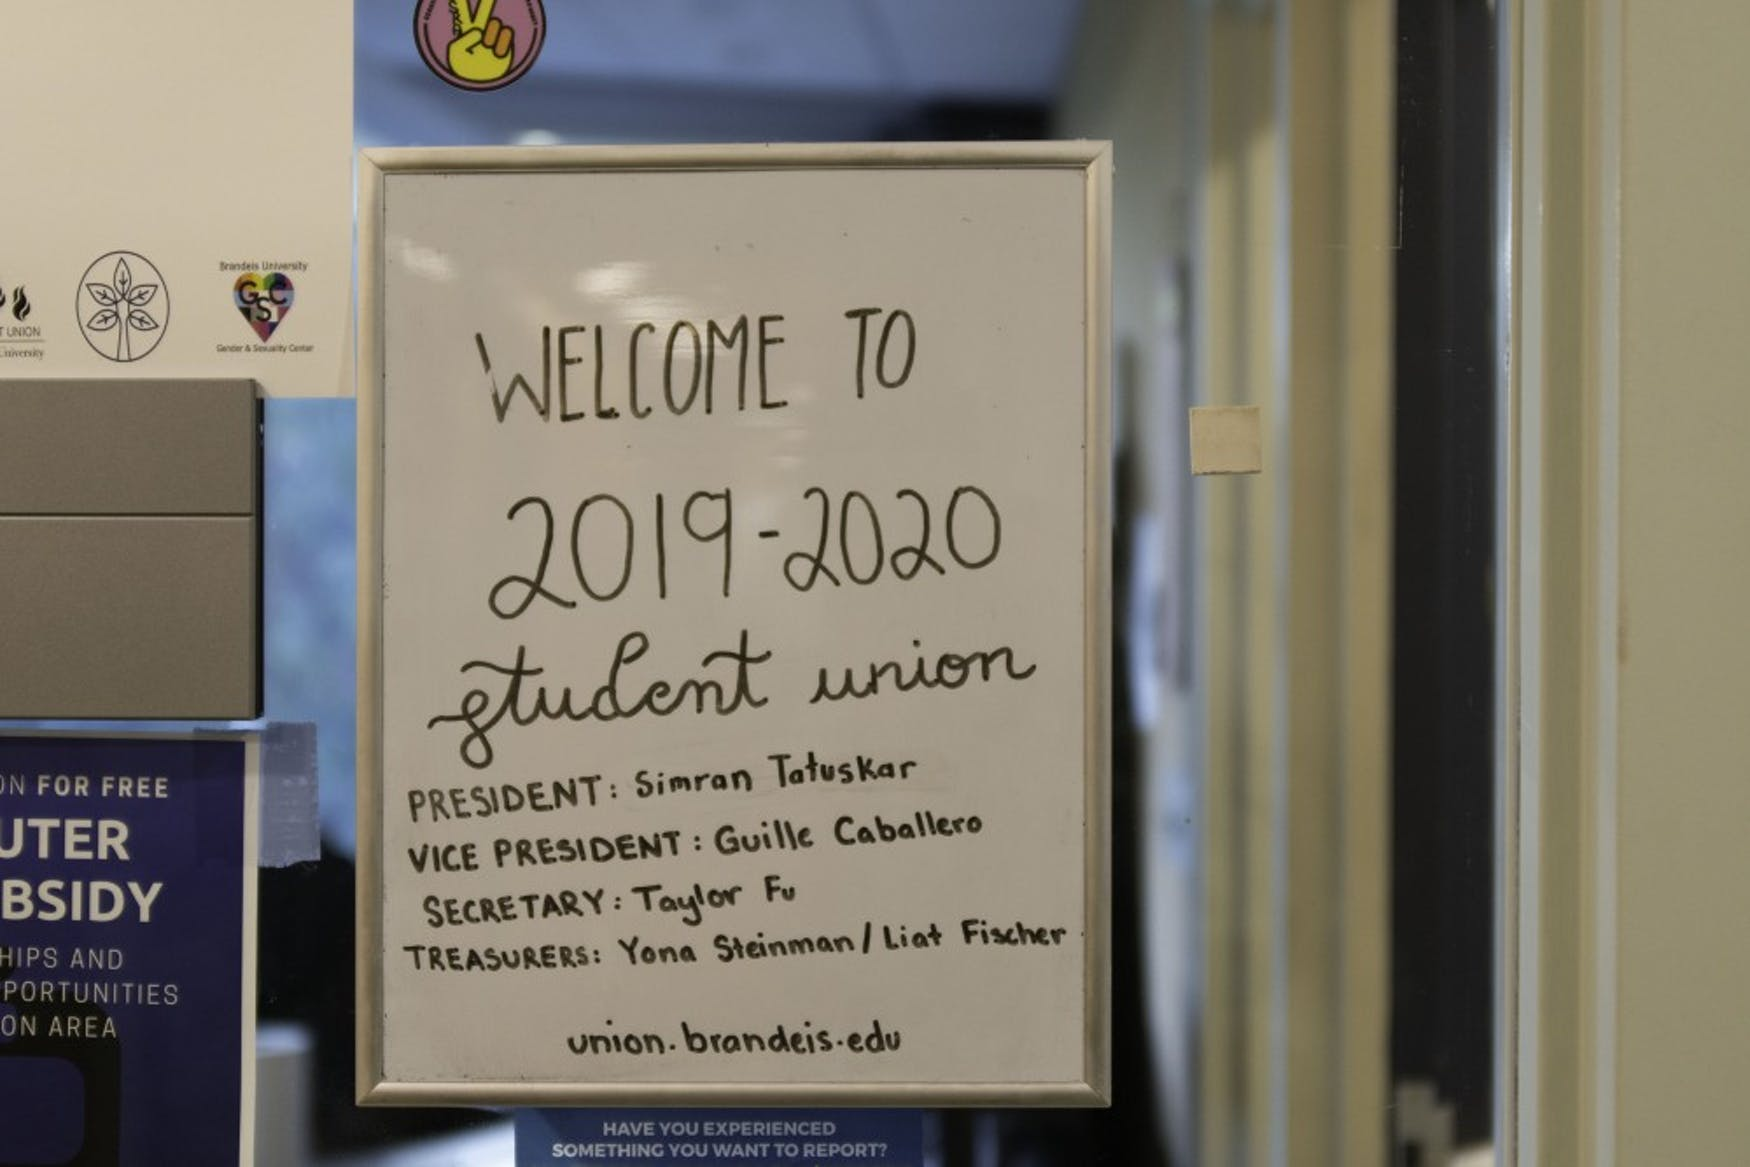 use-this-one-student-union-pictures-10-13-19-nz-0066-2